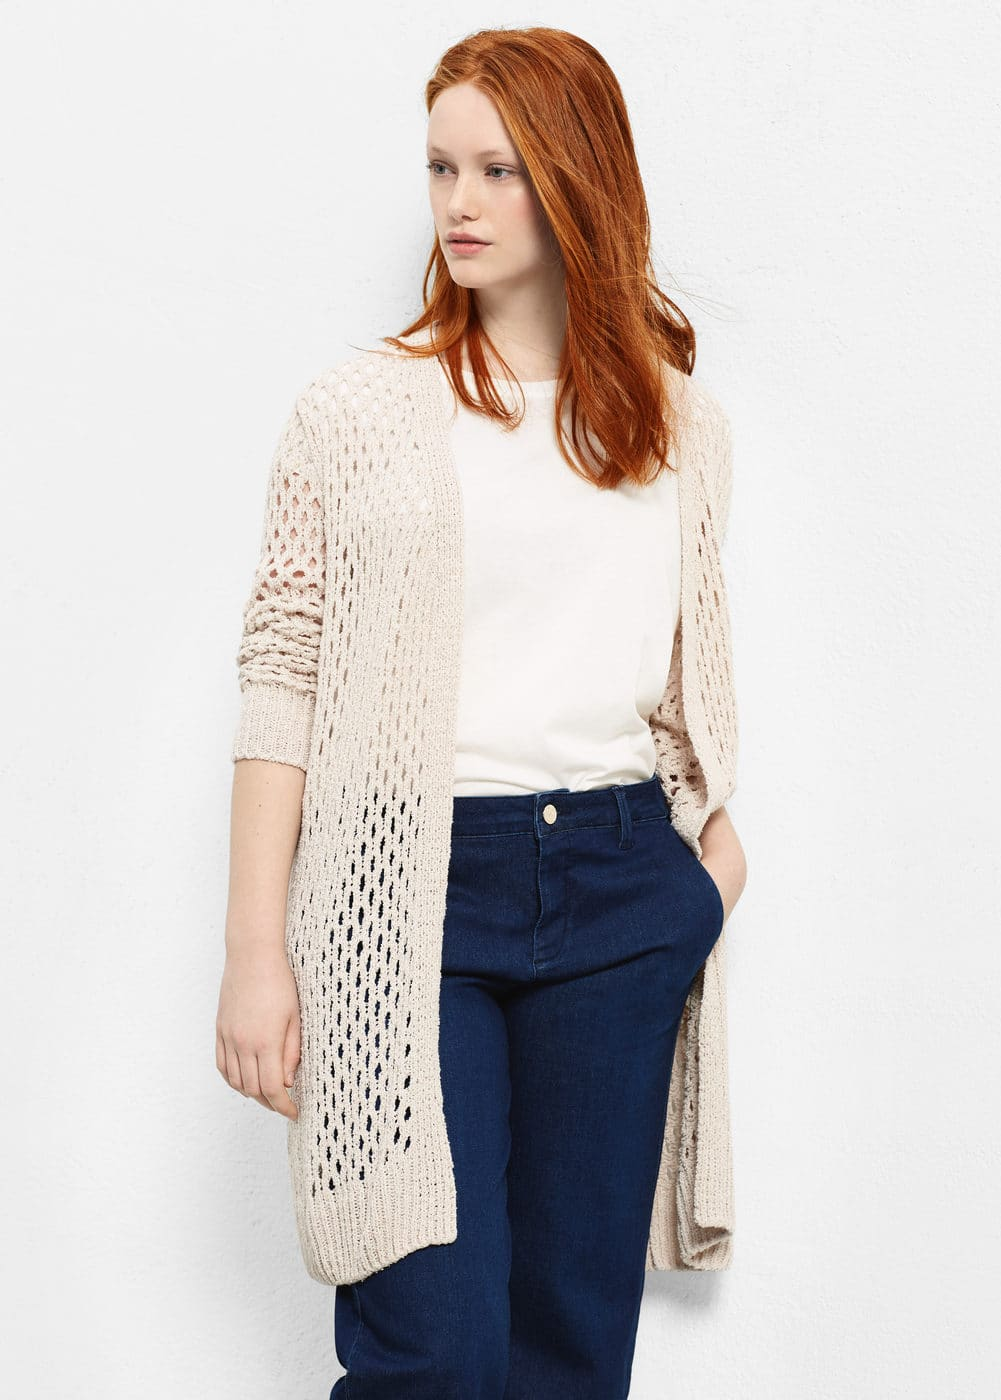 Openwork cotton cardigan | VIOLETA BY MANGO